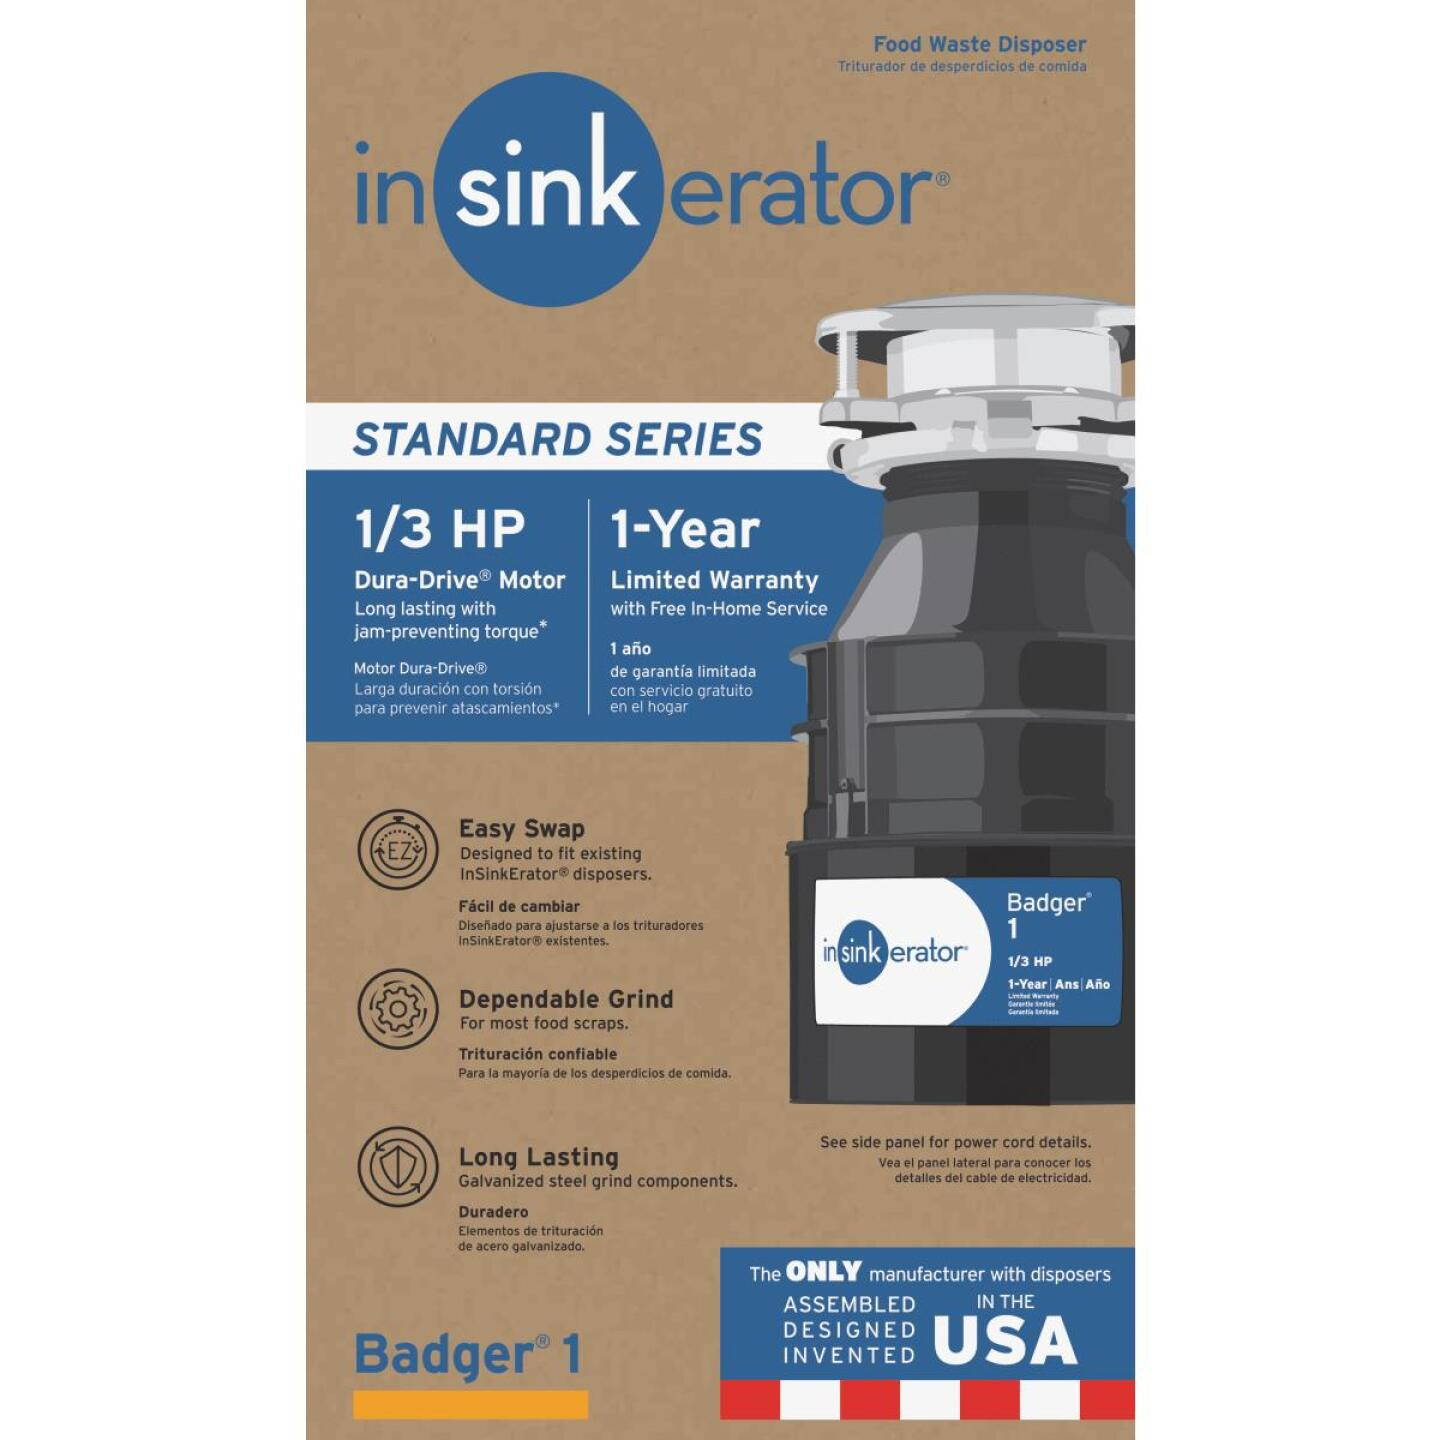 Insinkerator Badger 1/3 HP Garbage Disposal, 1 Year Warranty Image 1